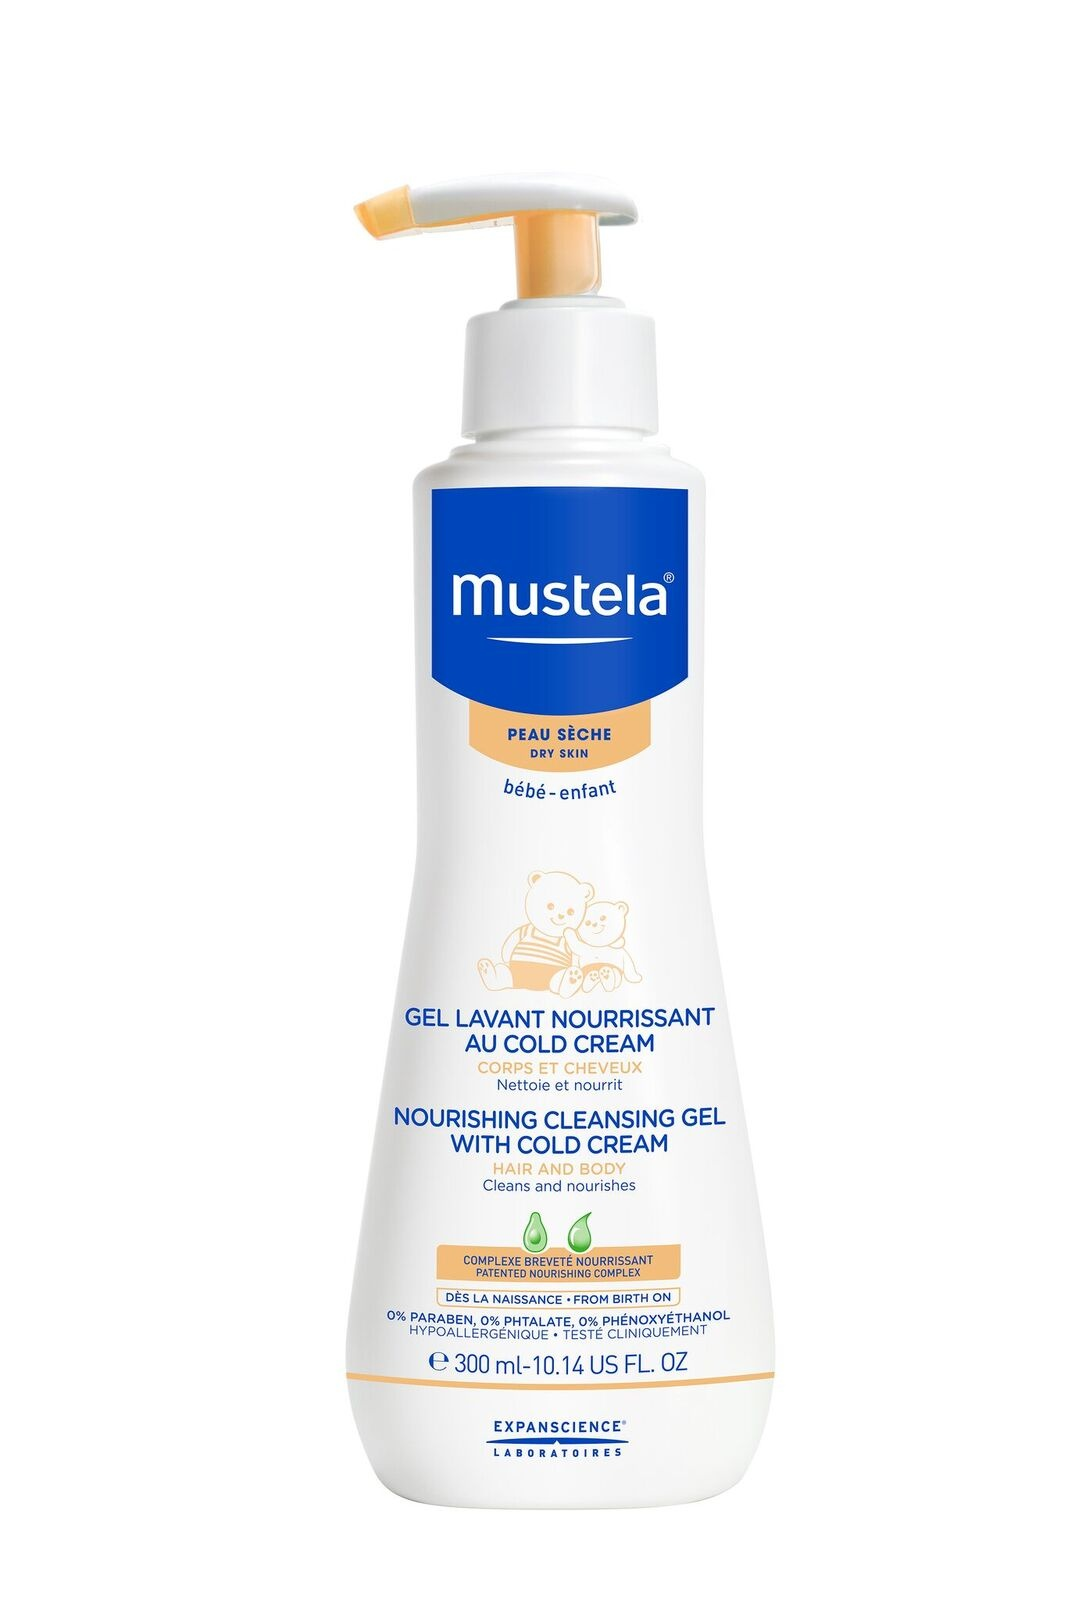 Mustela Nourishing Cleansing Gel with Cold Cream 300ml